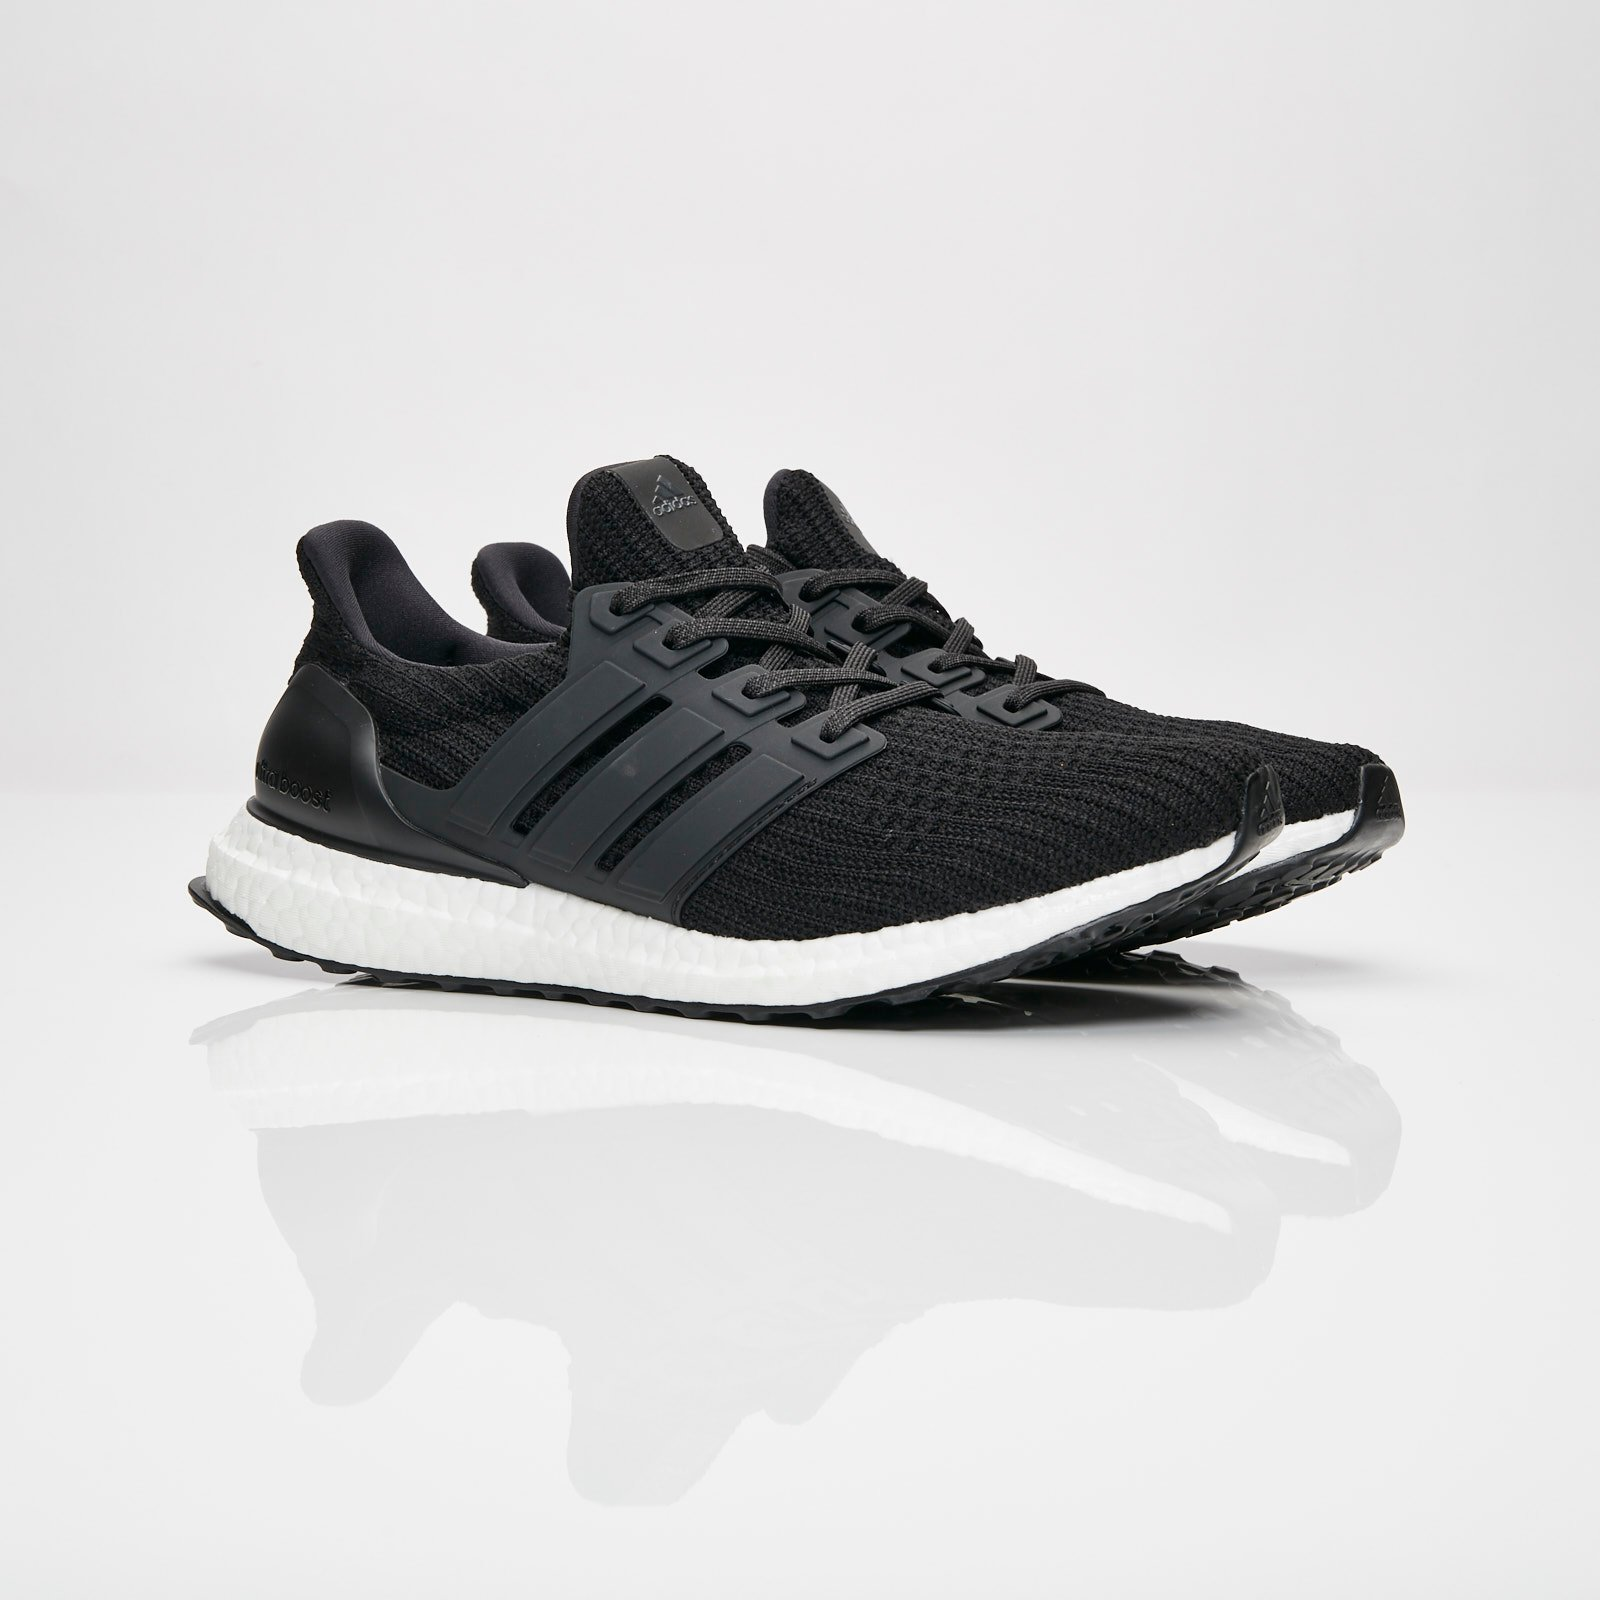 ever popular cheaper hot products adidas UltraBOOST - Bb6166 - Sneakersnstuff | sneakers ...